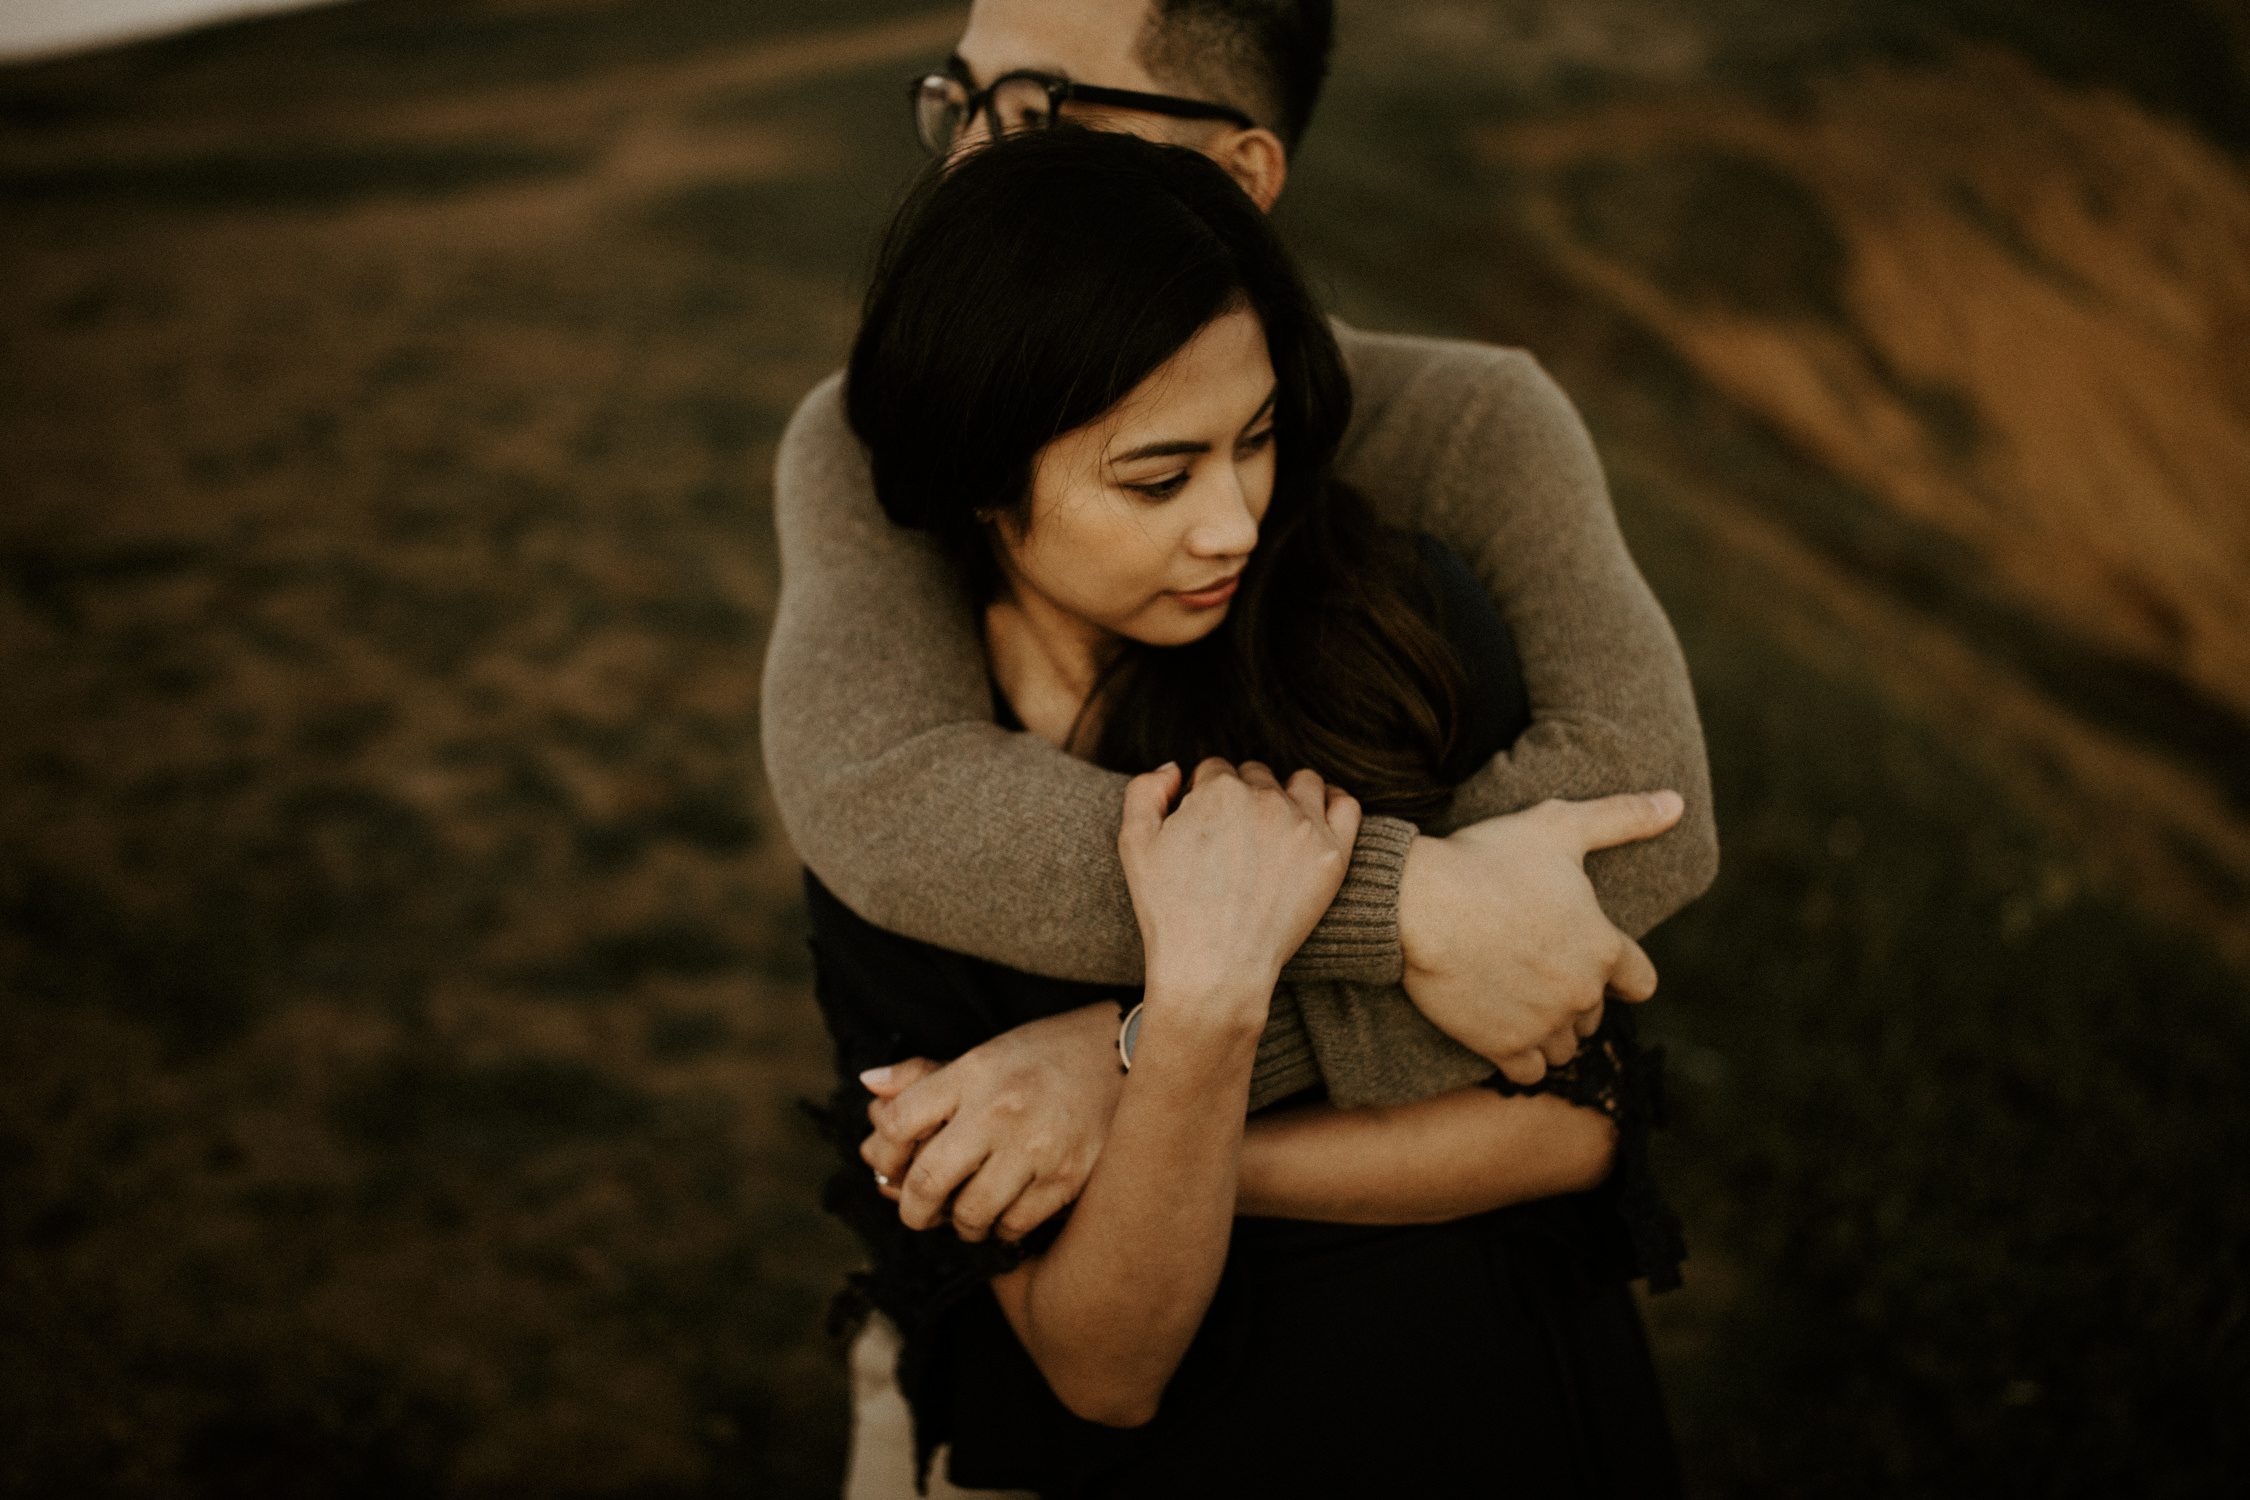 couple-intimate-engagement-session-northern-california-94.jpg